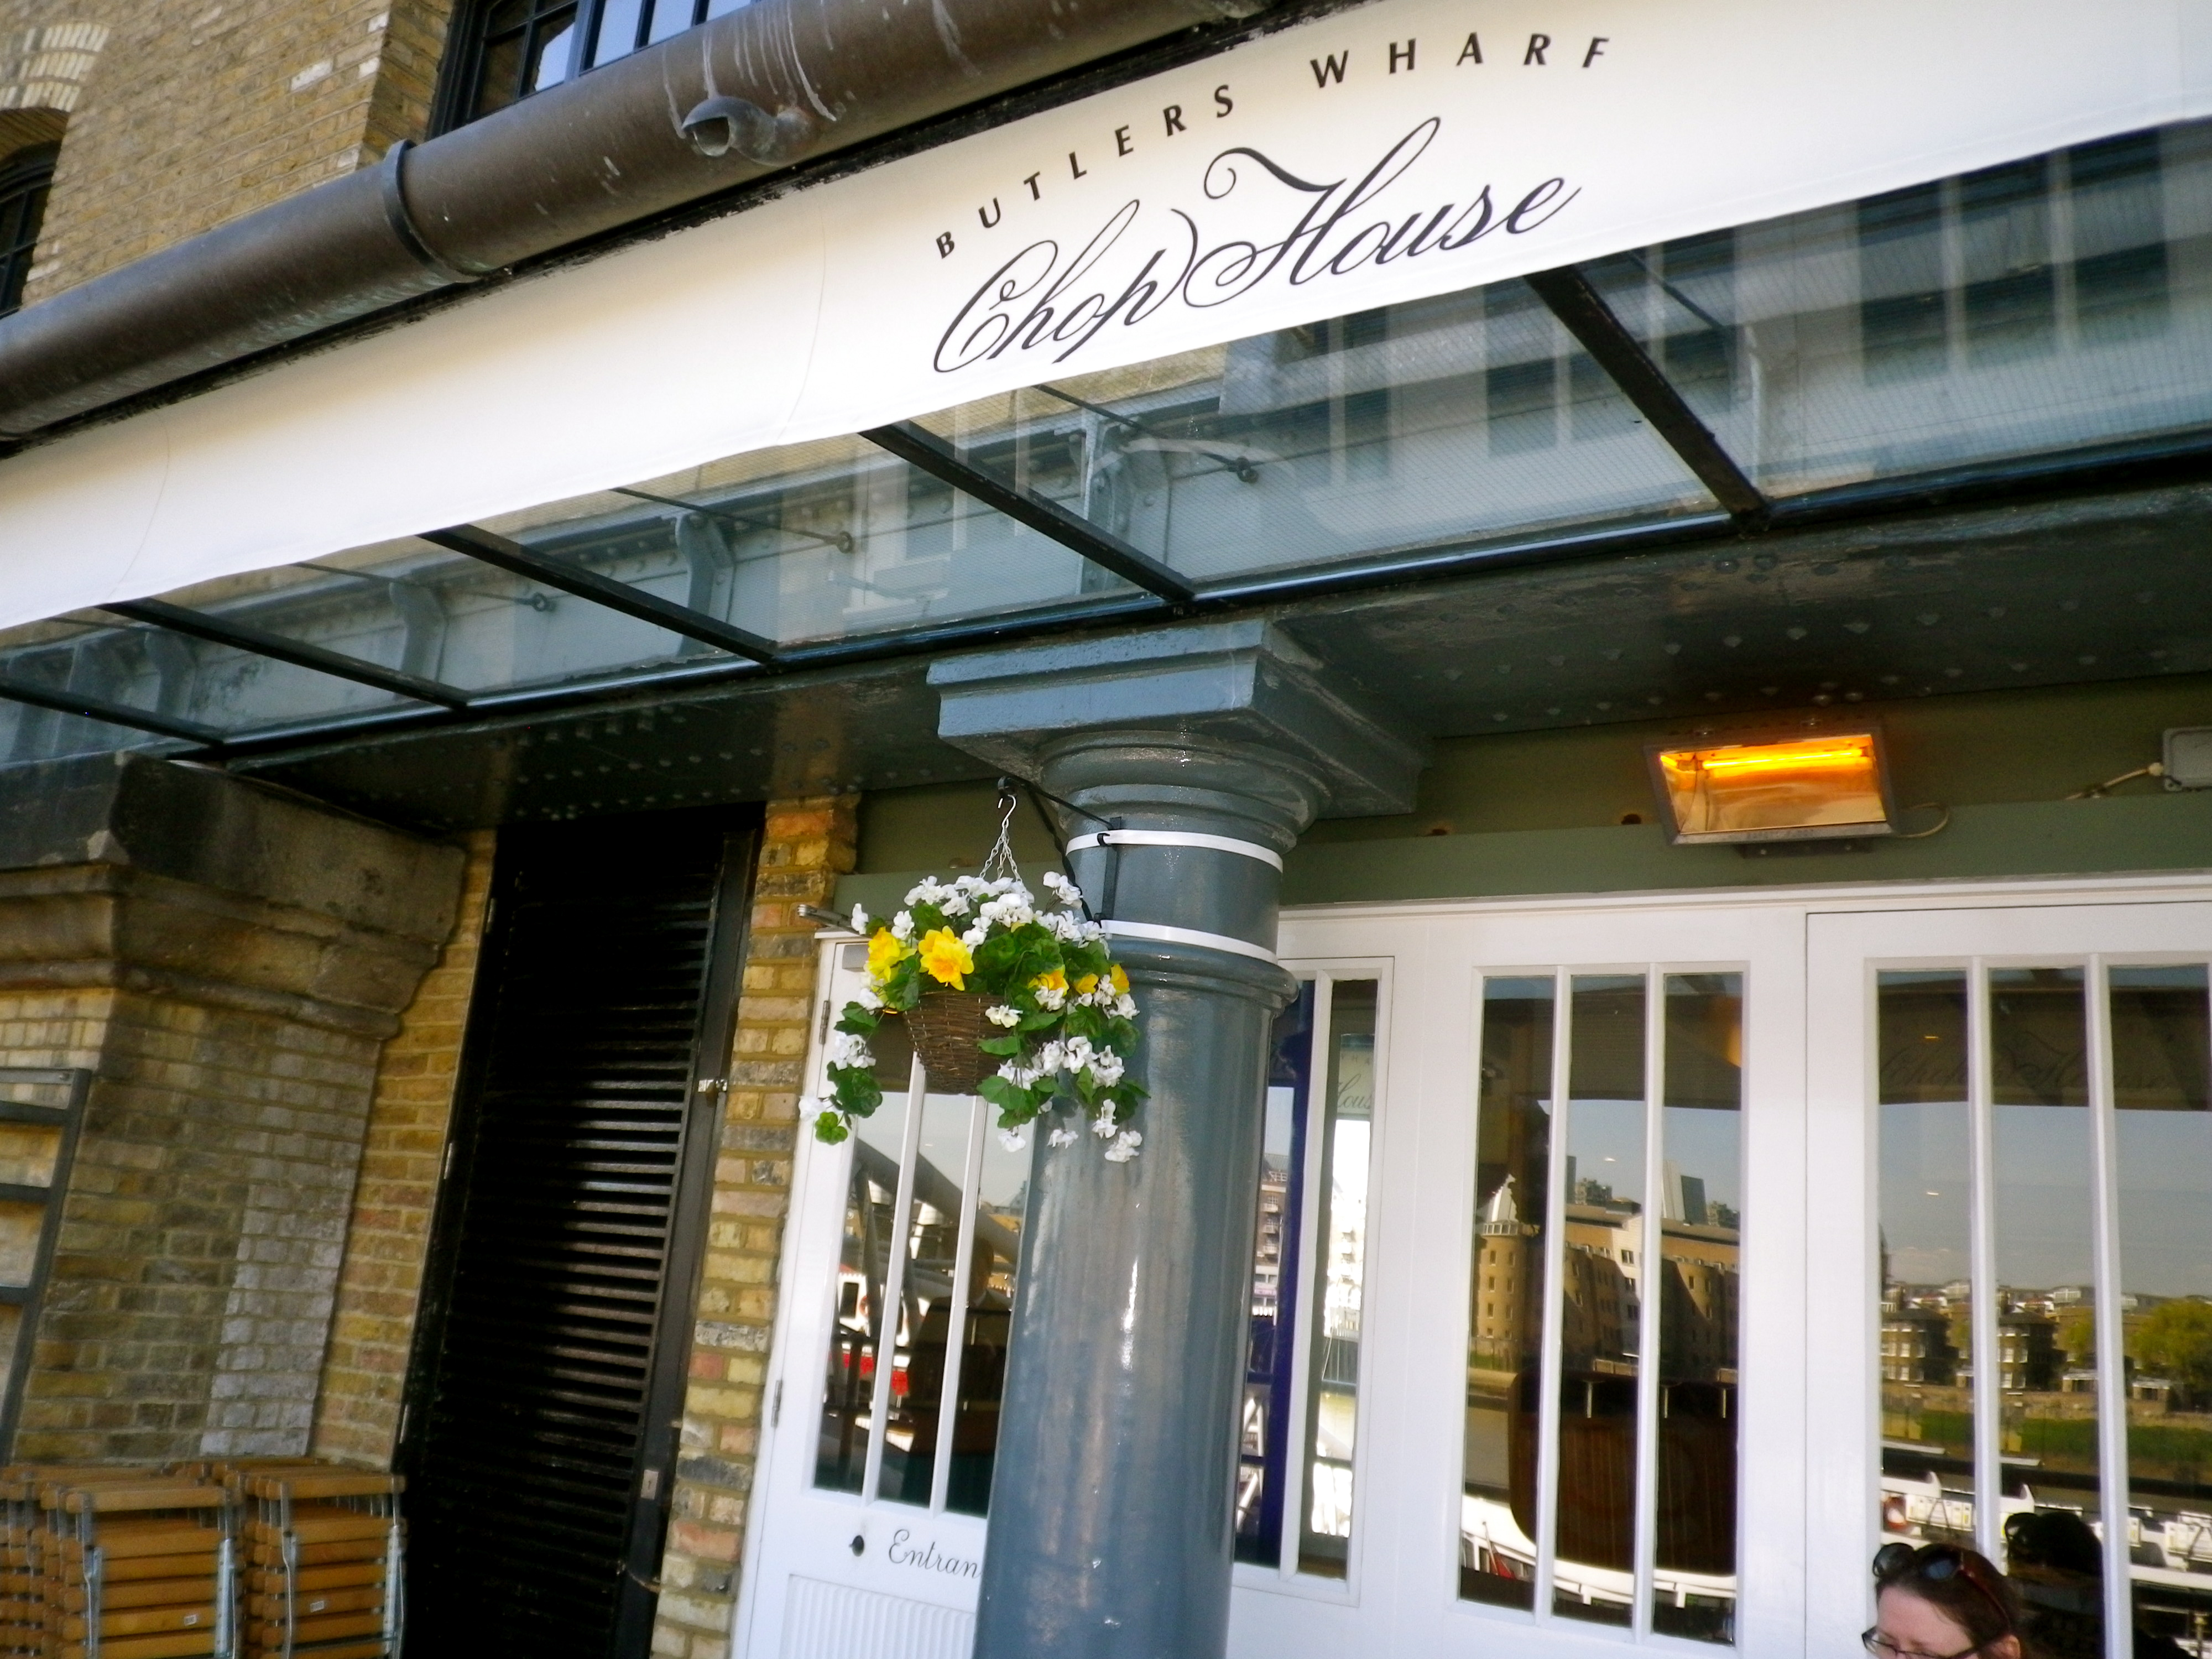 Butlers Wharf Chop House Thoroughly Modern Milly